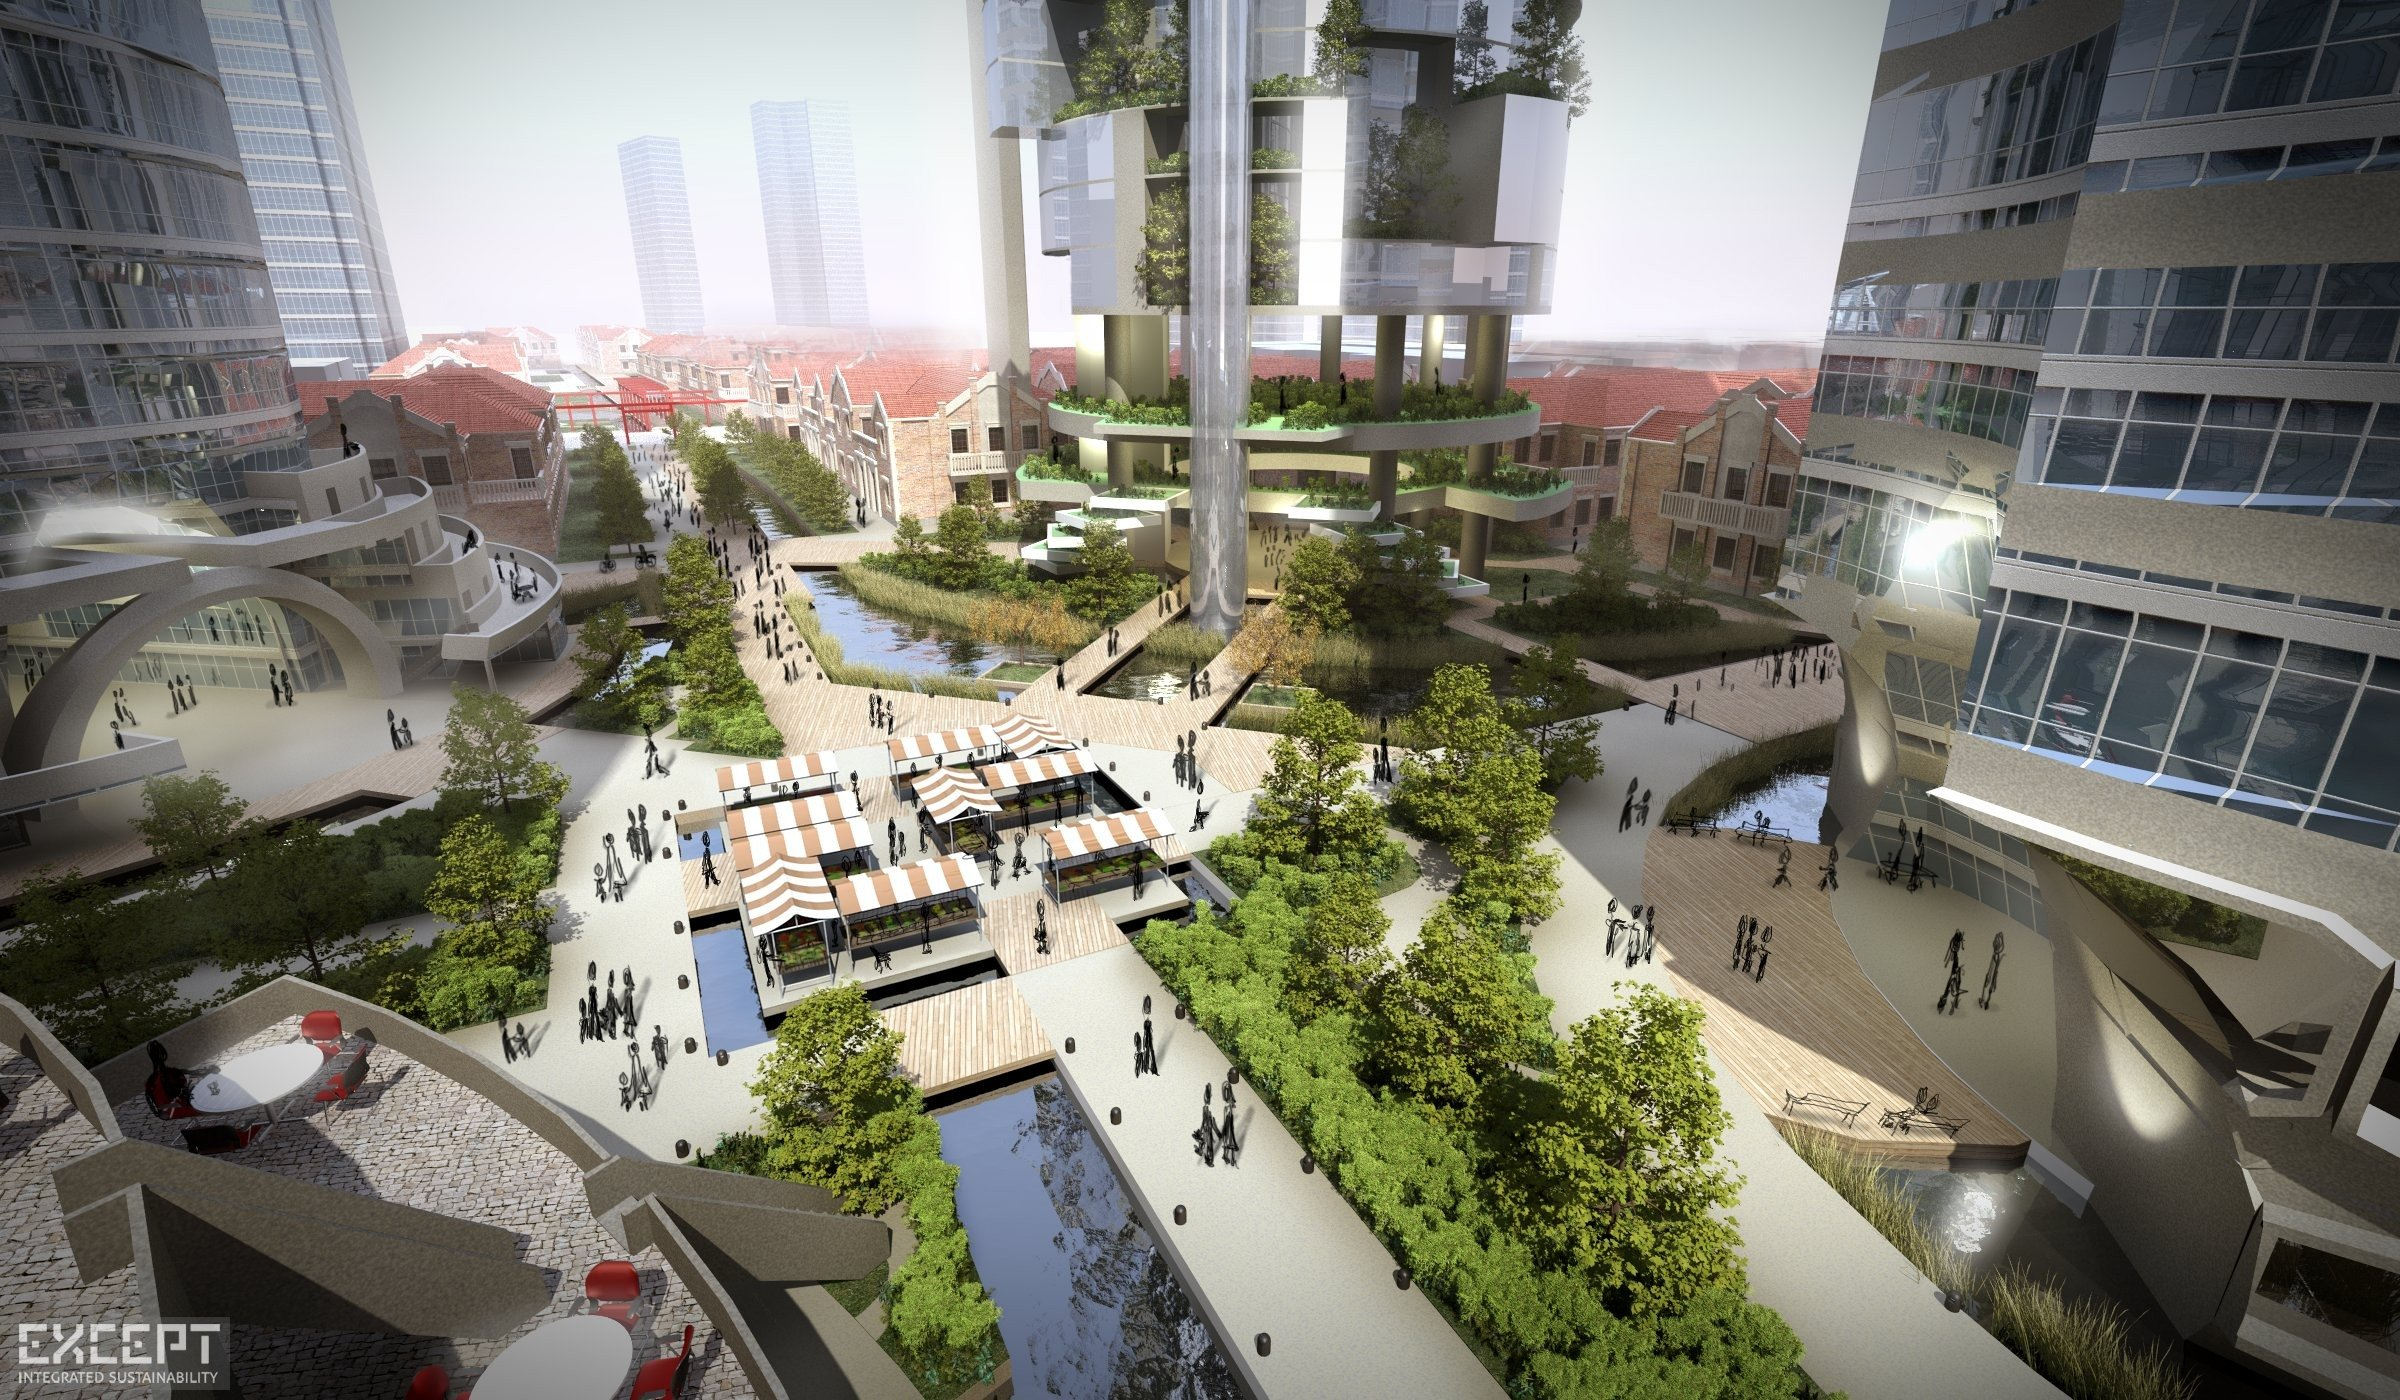 Shanghai Sustainable Masterplan - Future vision of a new Shanghai